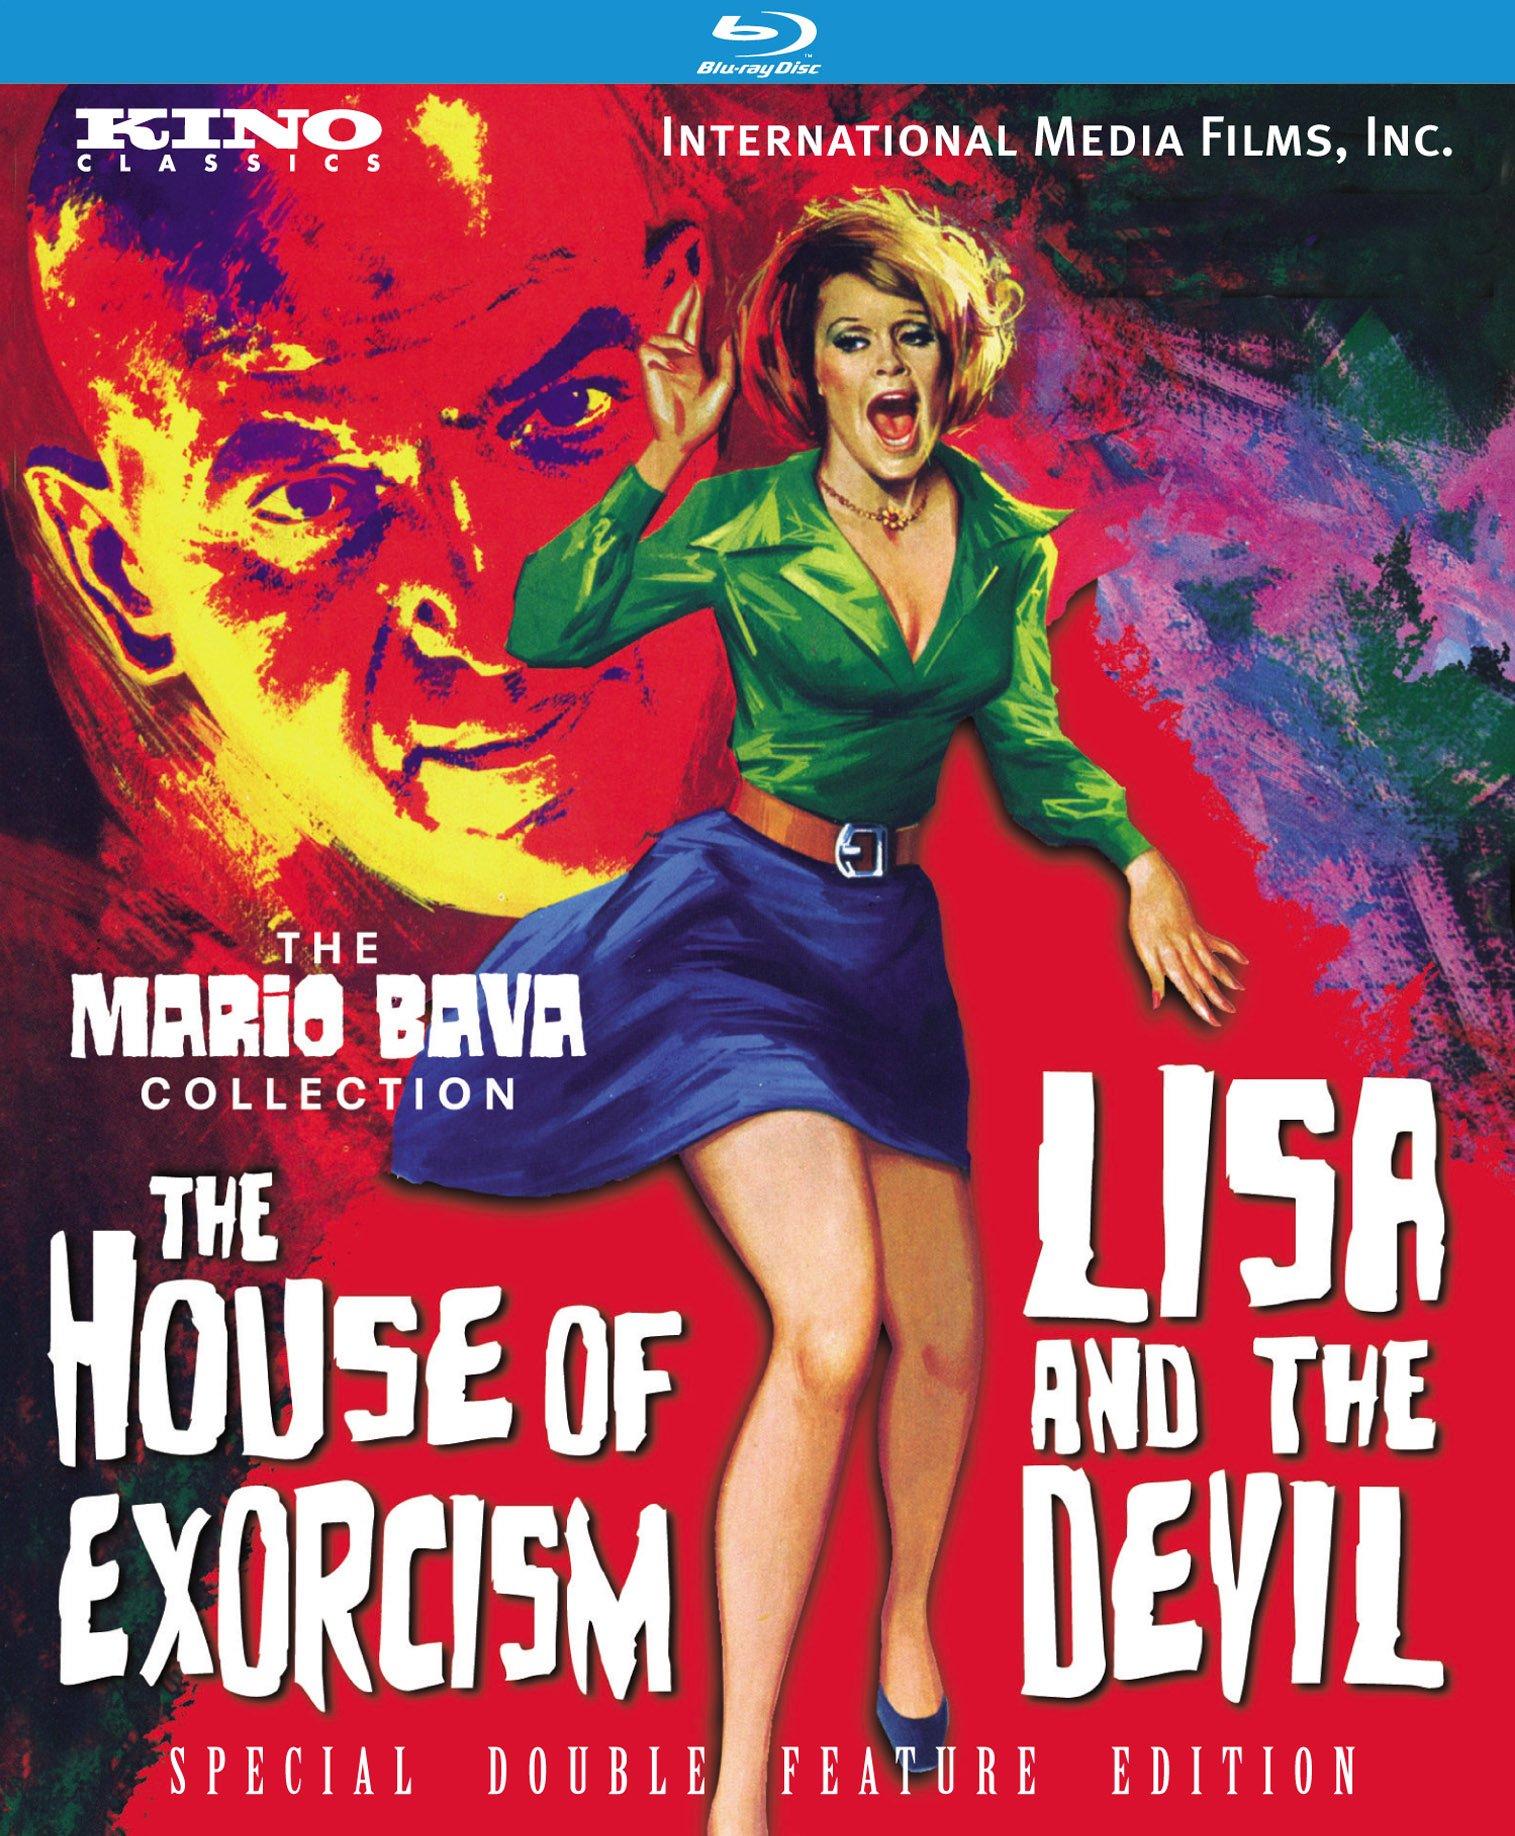 Blu-ray : The House of Exorcism / Lisa and the Devil (Remastered, Mono Sound)